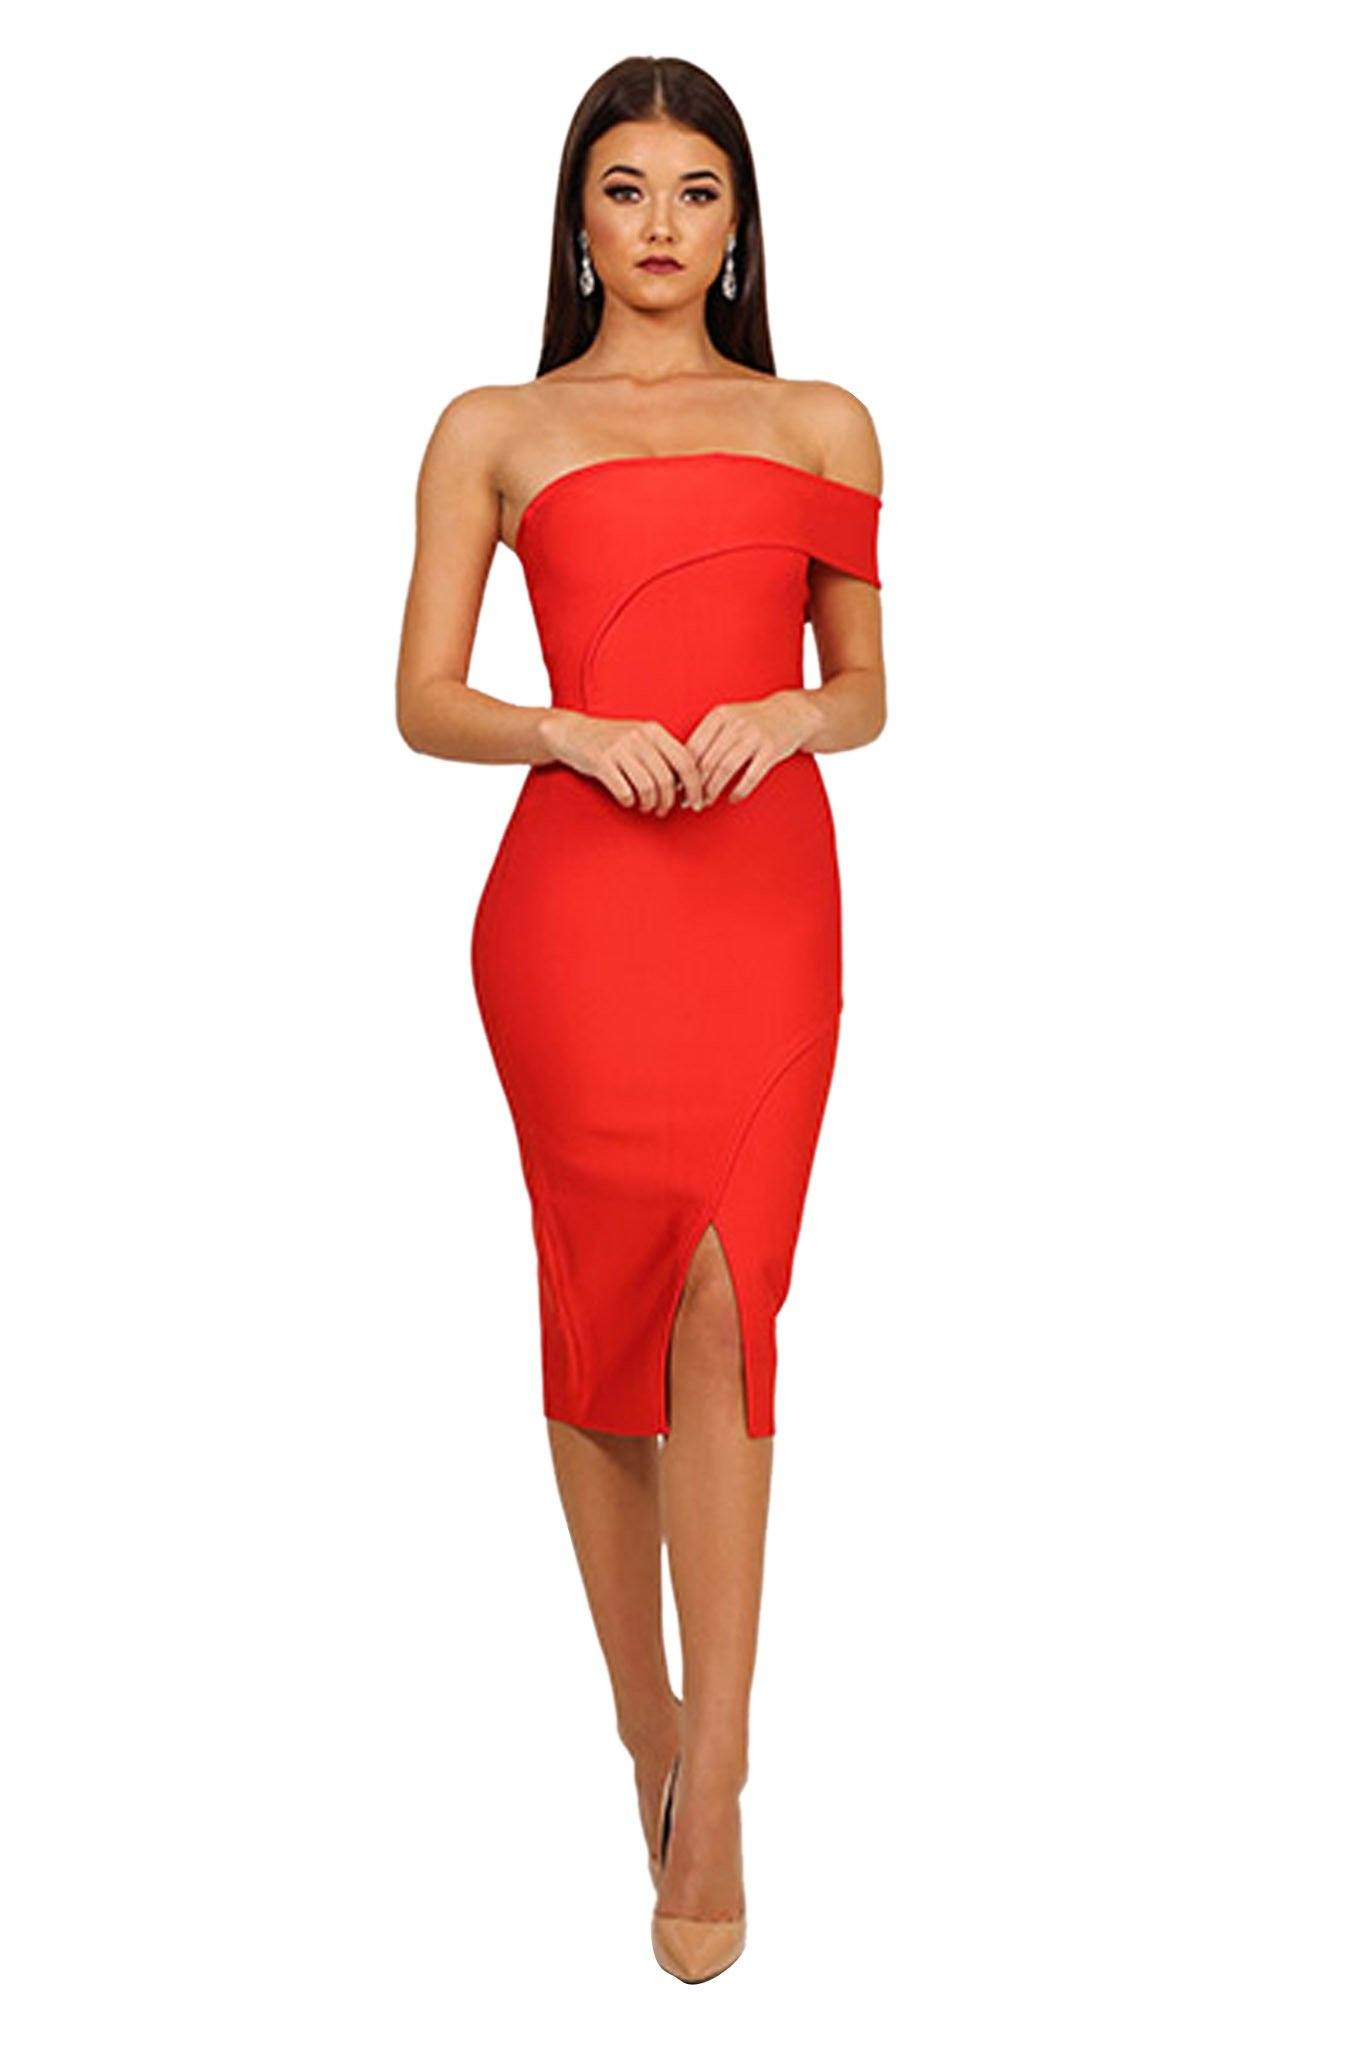 dbbc4e5fe68 Red one shoulder bodycon midi bandage dress with front slit